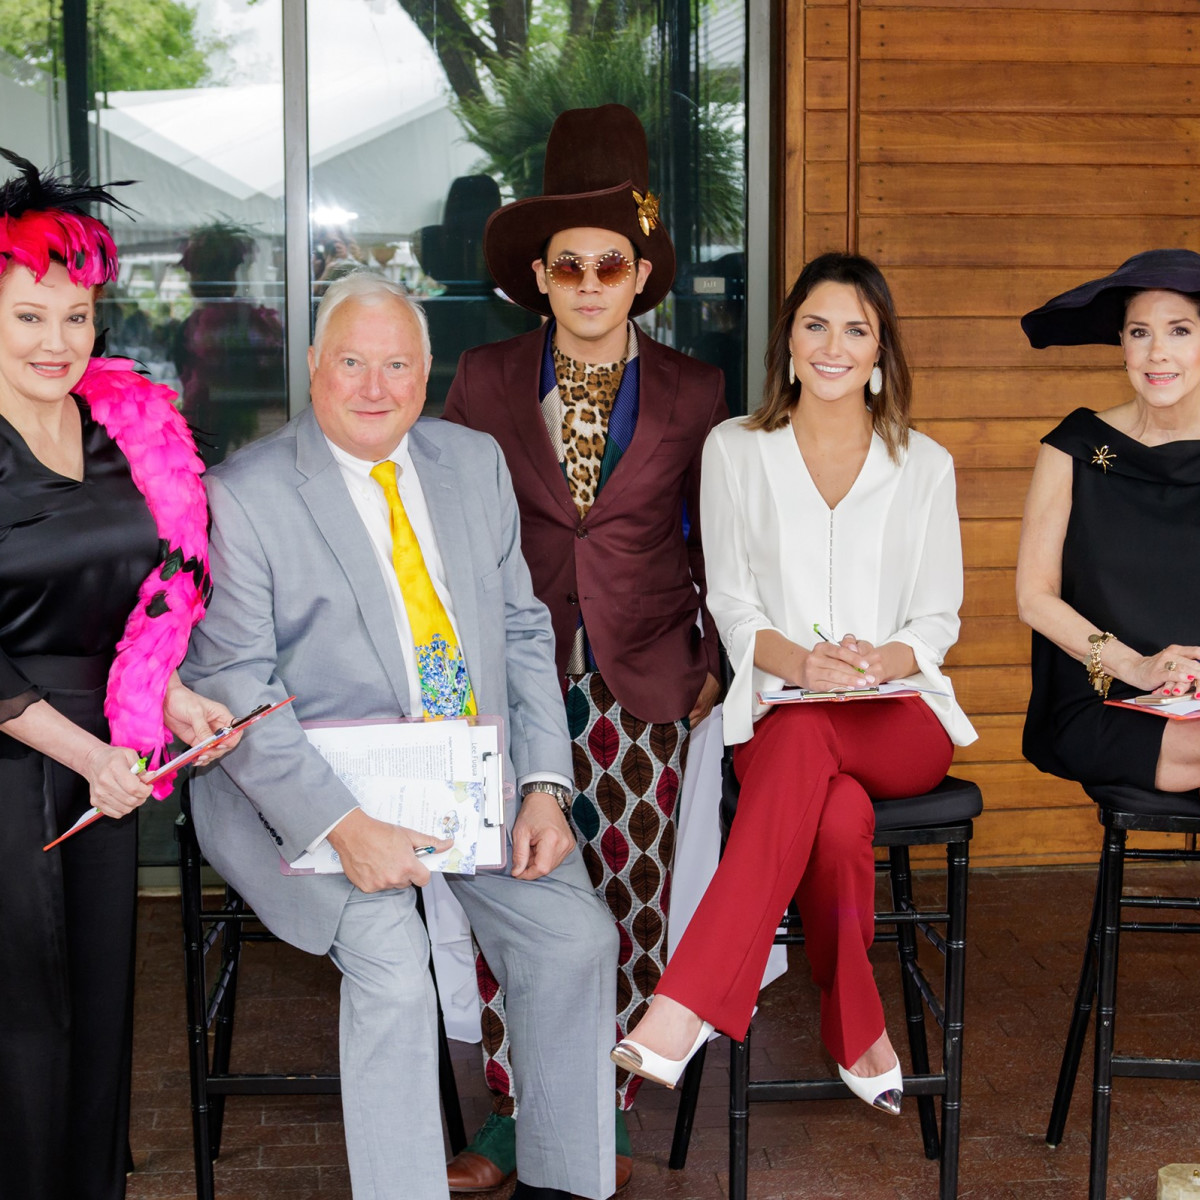 Mad Hatters 2018, judges